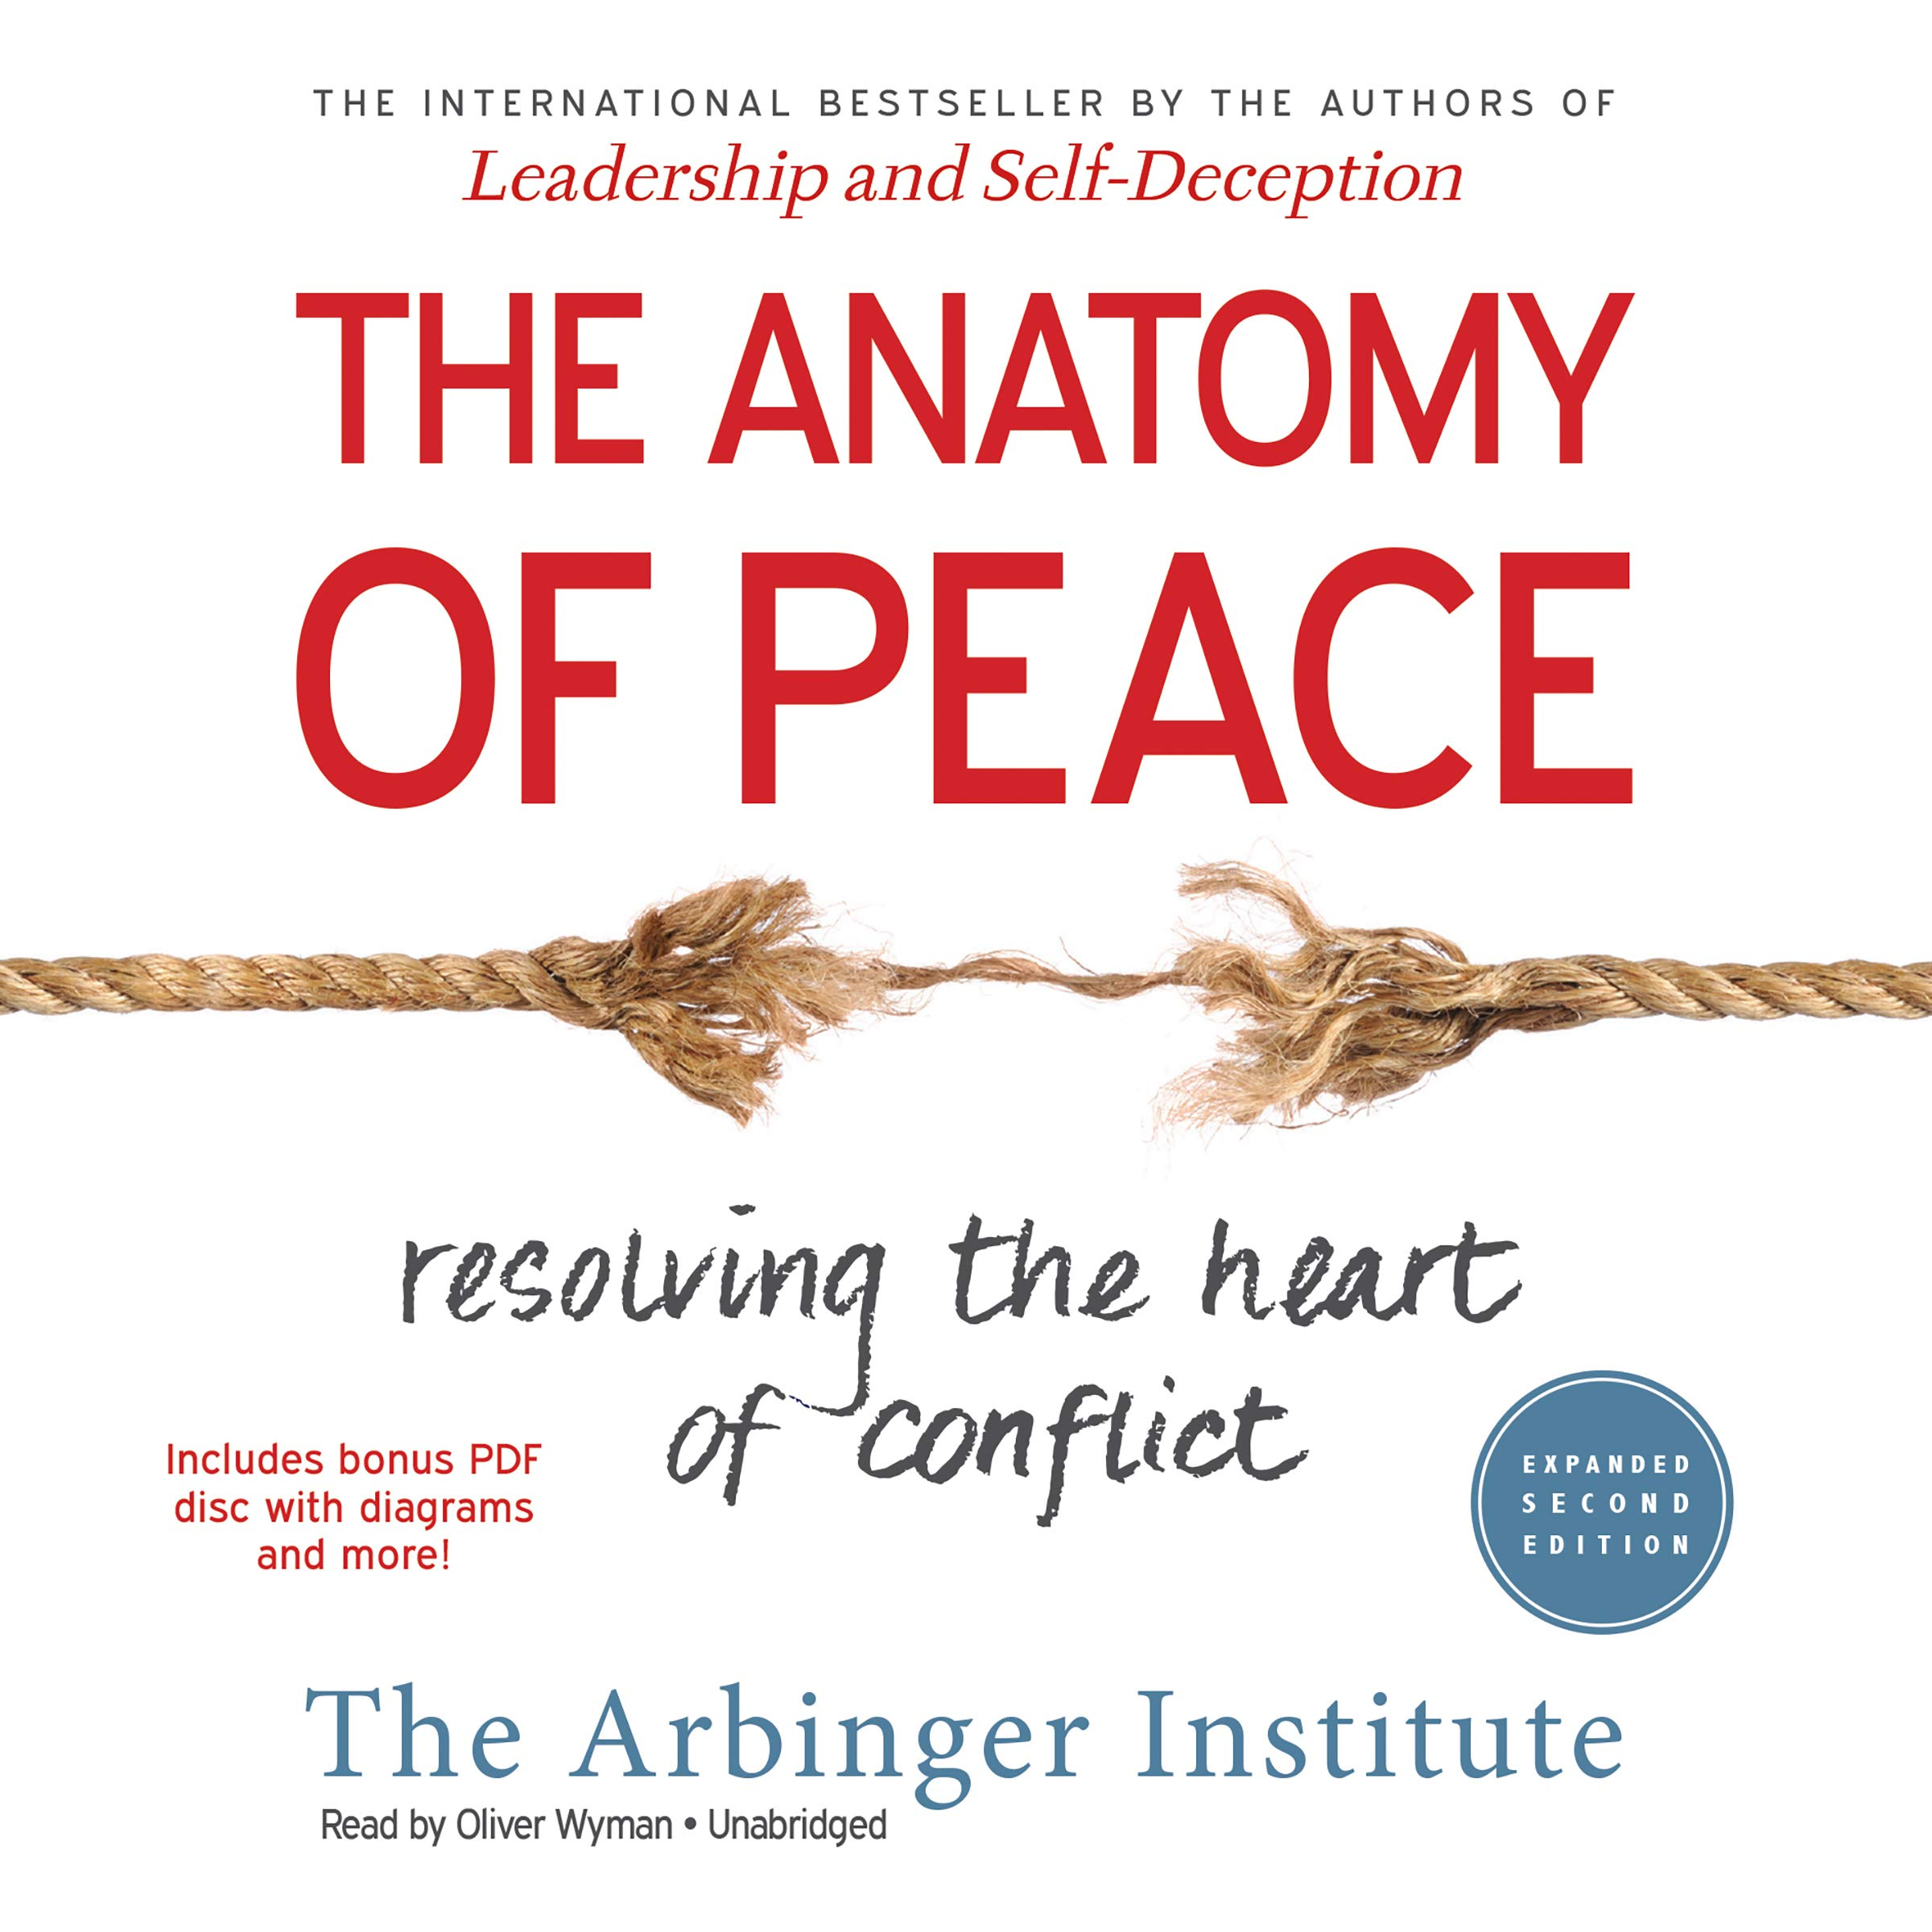 The Anatomy of Peace, Expanded Second Edition: Resolving the Heart of  Conflict: Amazon.co.uk: Arbinger Institute: 9781504677134: Books